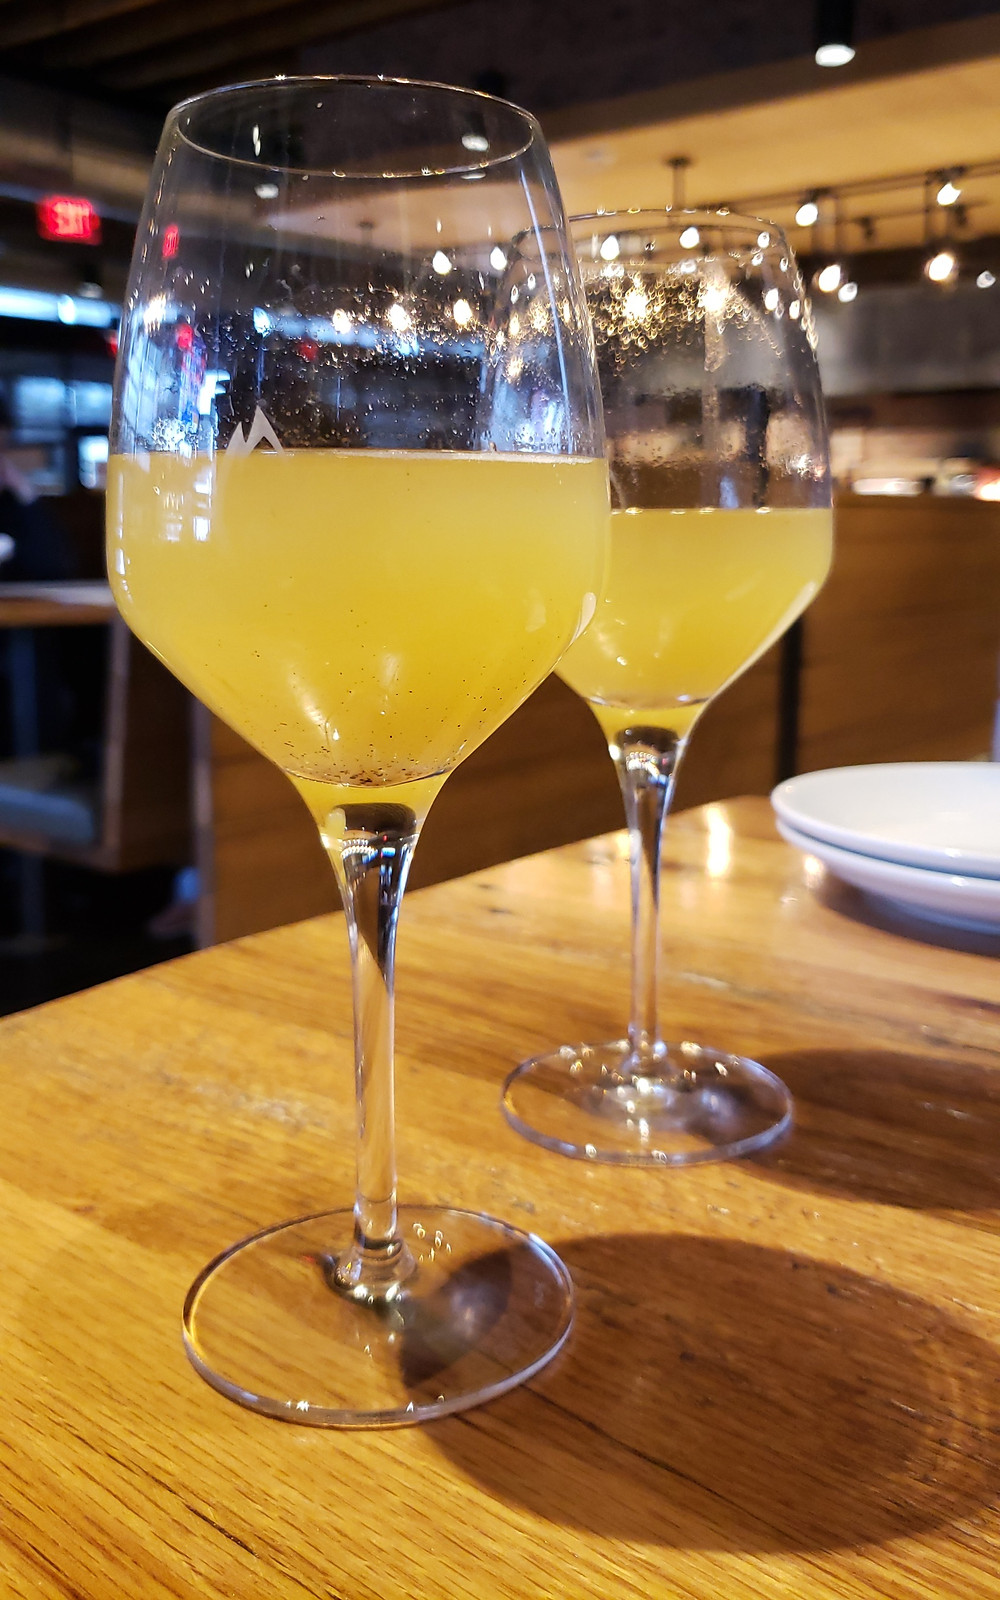 The Pineapple Ginger Mimosas were absolutely delicious.